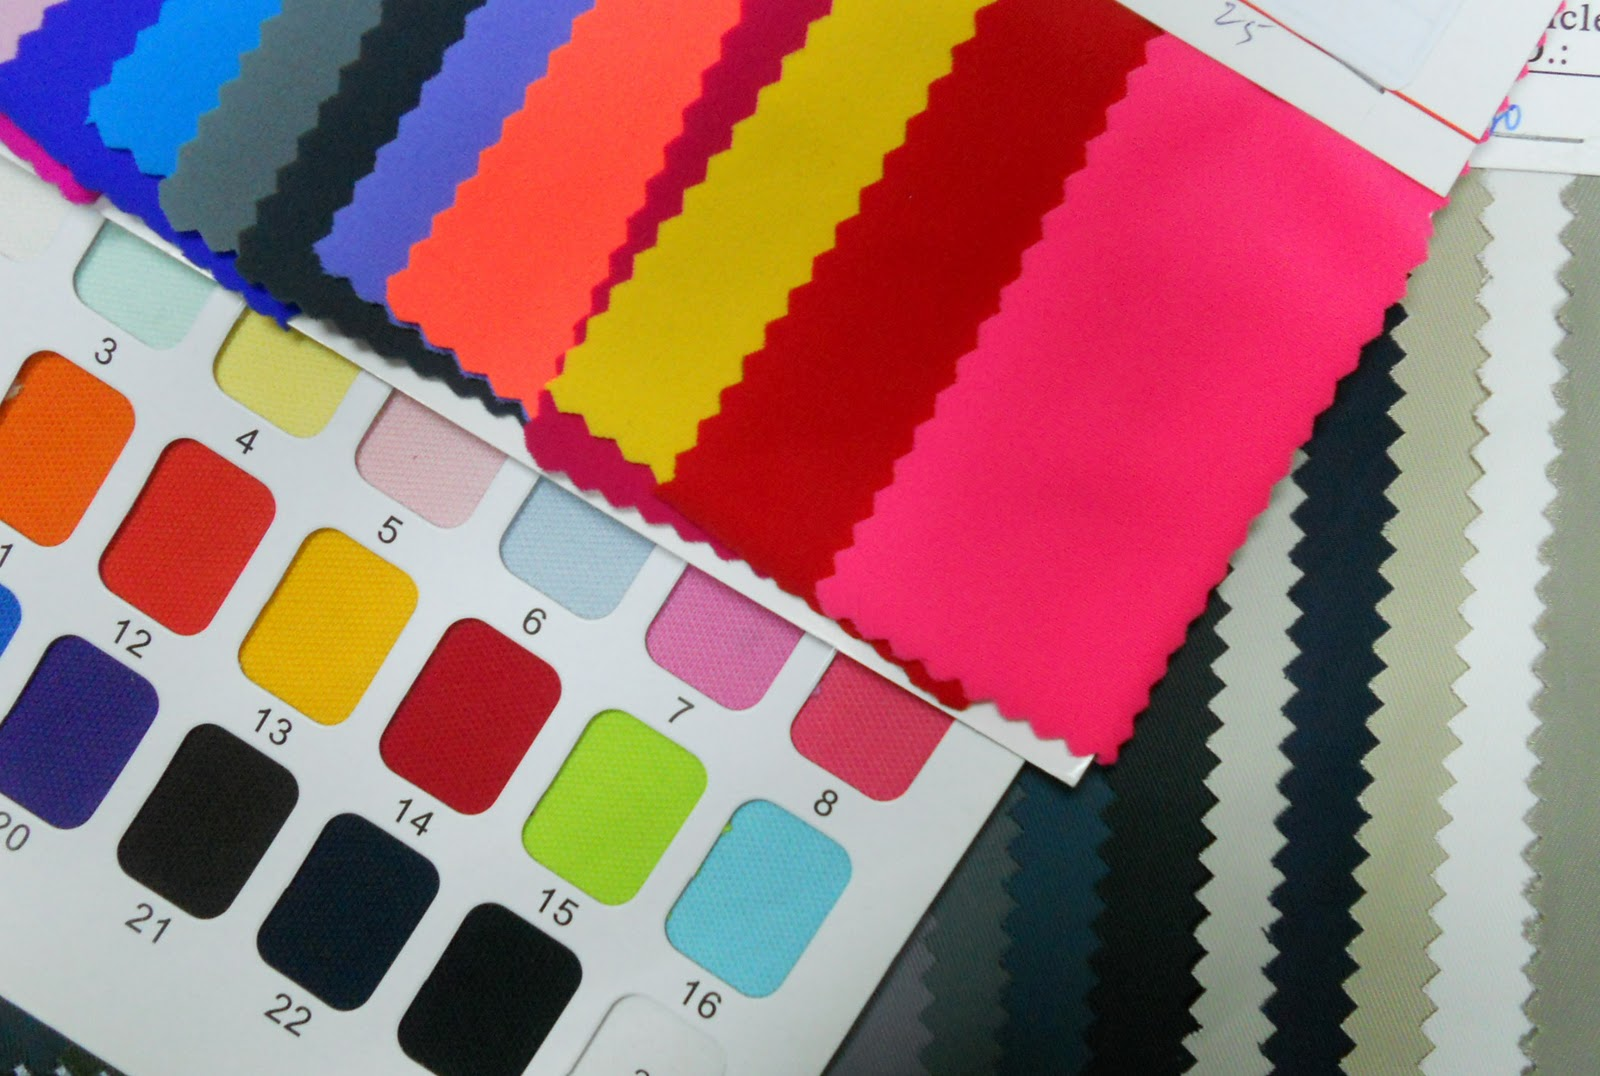 Fabric samples neon colors spandex nylon cotton